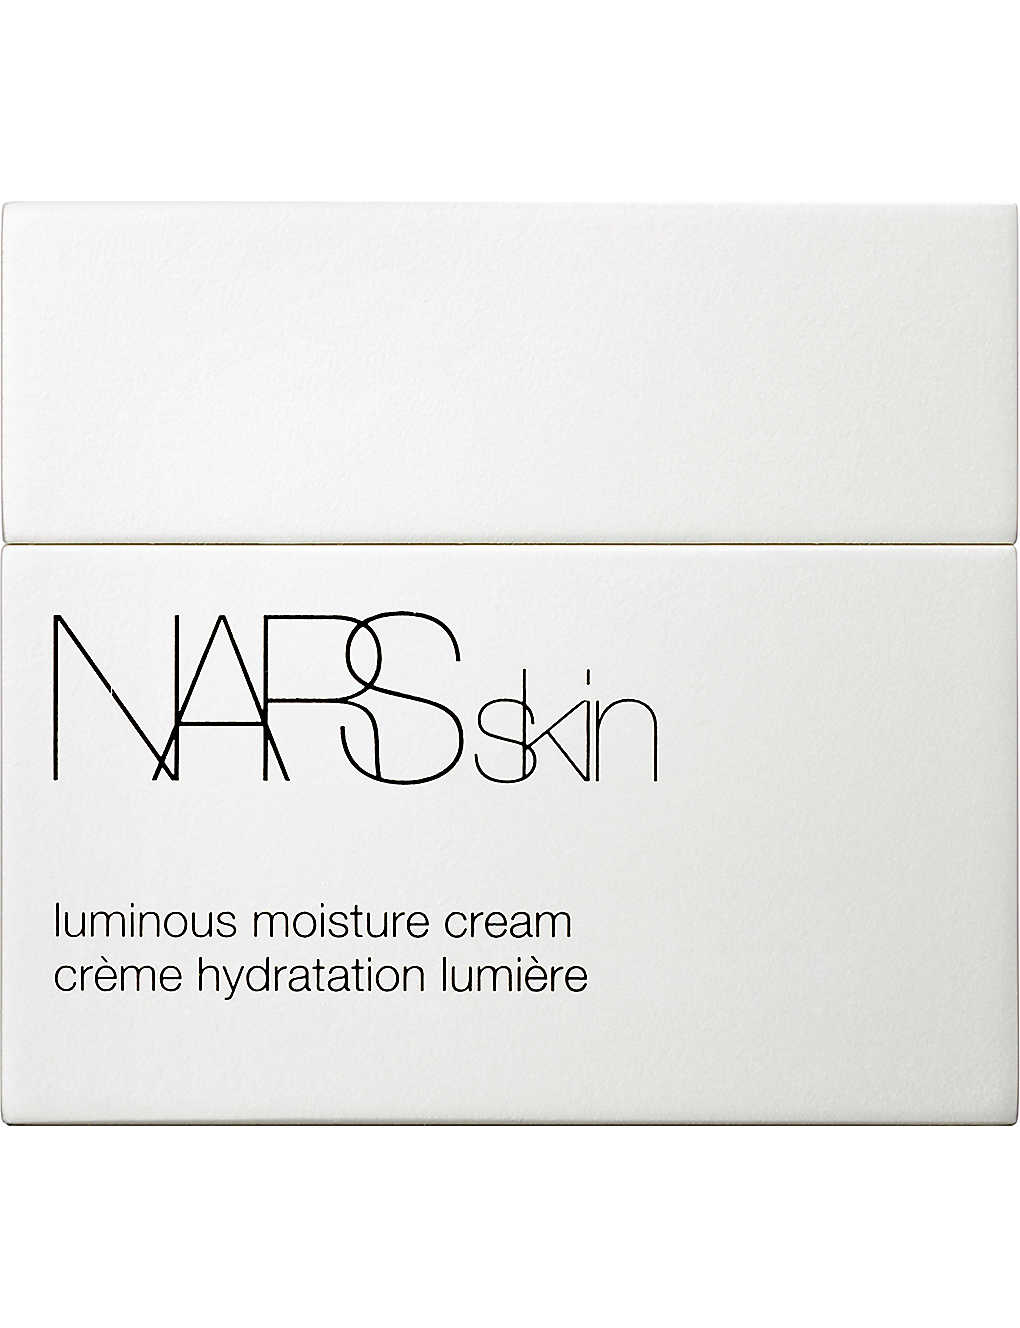 NARS: Luminous moisture cream 50ml